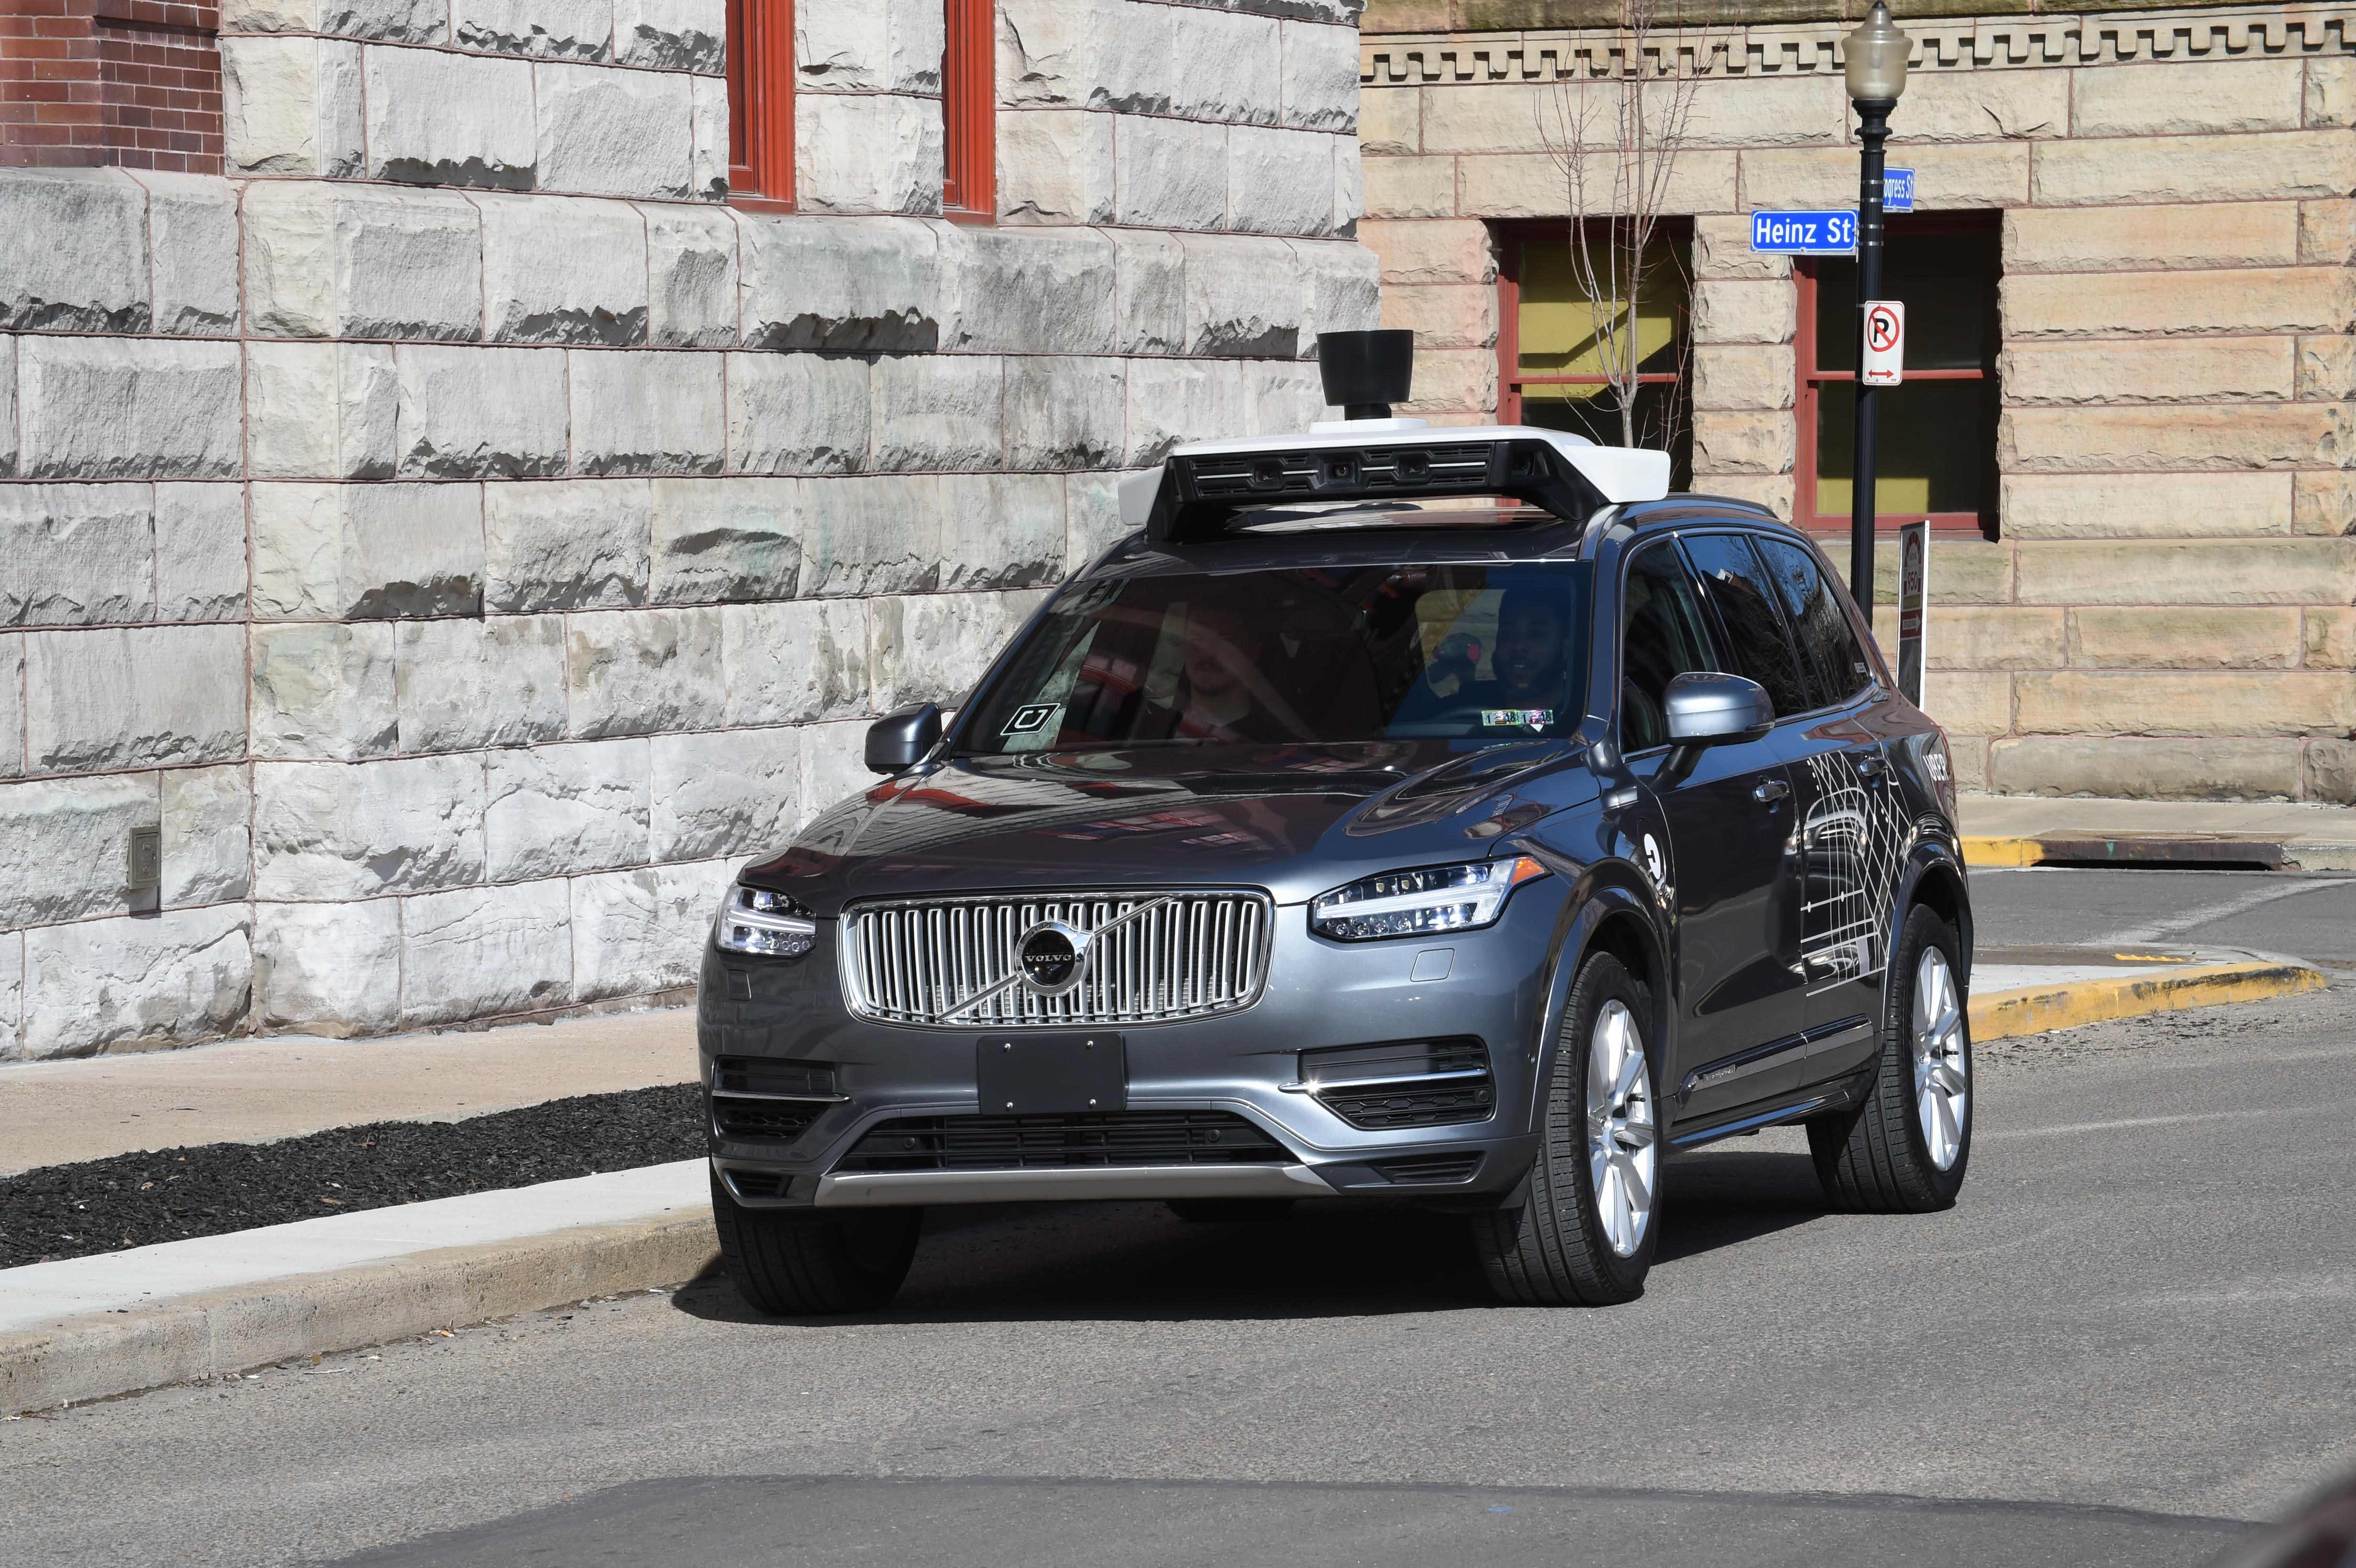 Report: Uber self-driving team was preparing for CEO demo before